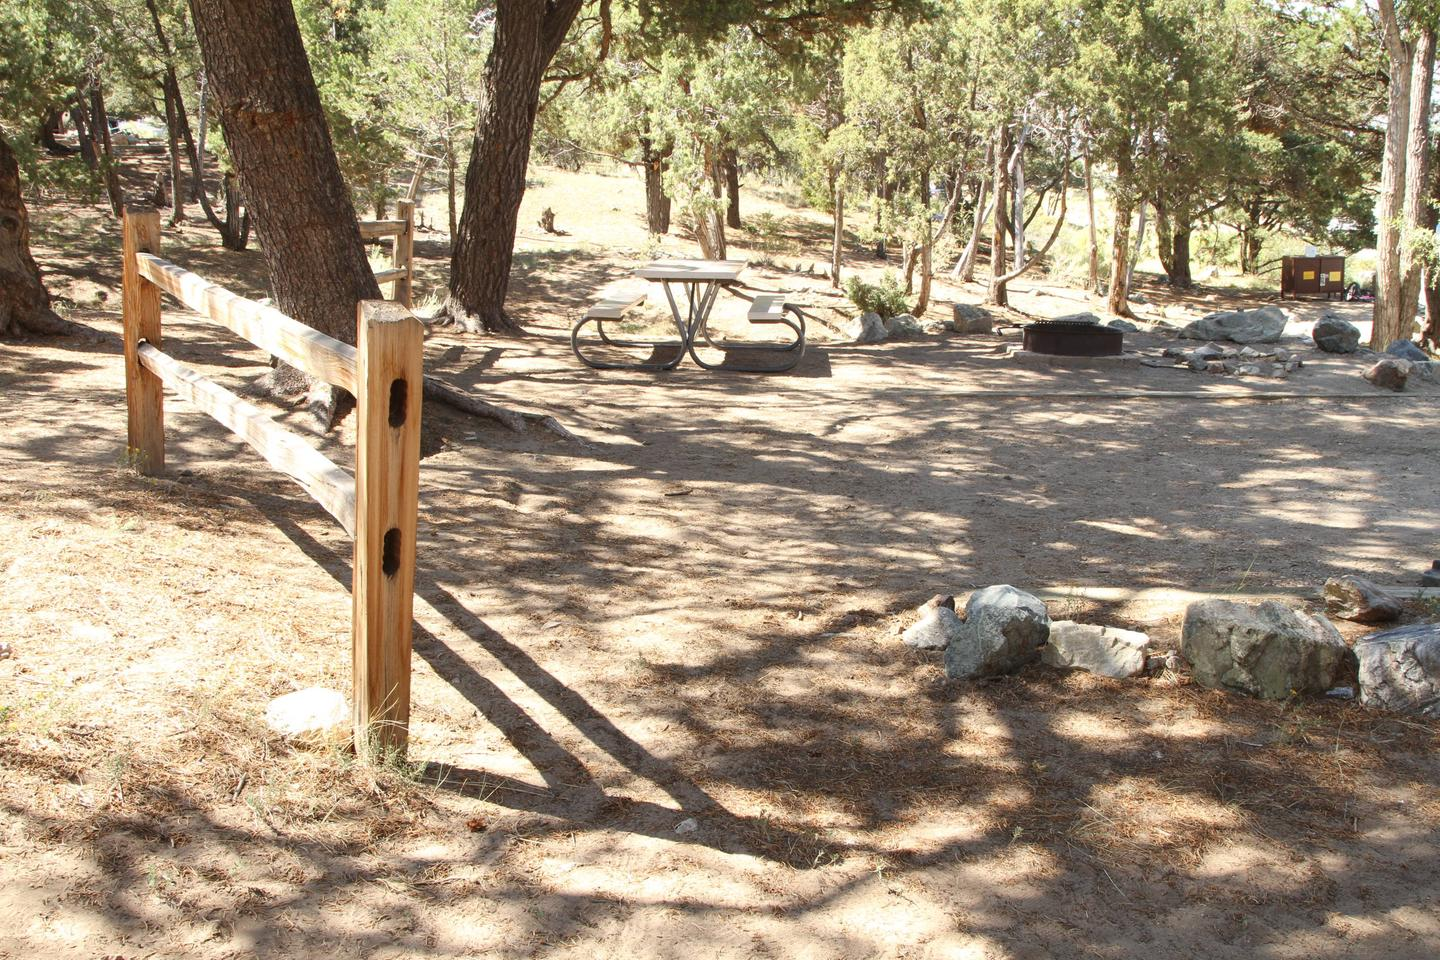 Back view of Site #27 designated tent pad, fire ring and picnic table. Bear box from neighboring Site #28 visible in background. This is an out dated photo that does not show changes due to flash flood and fallen tree damage.Site #27, Pinon Flats Campground